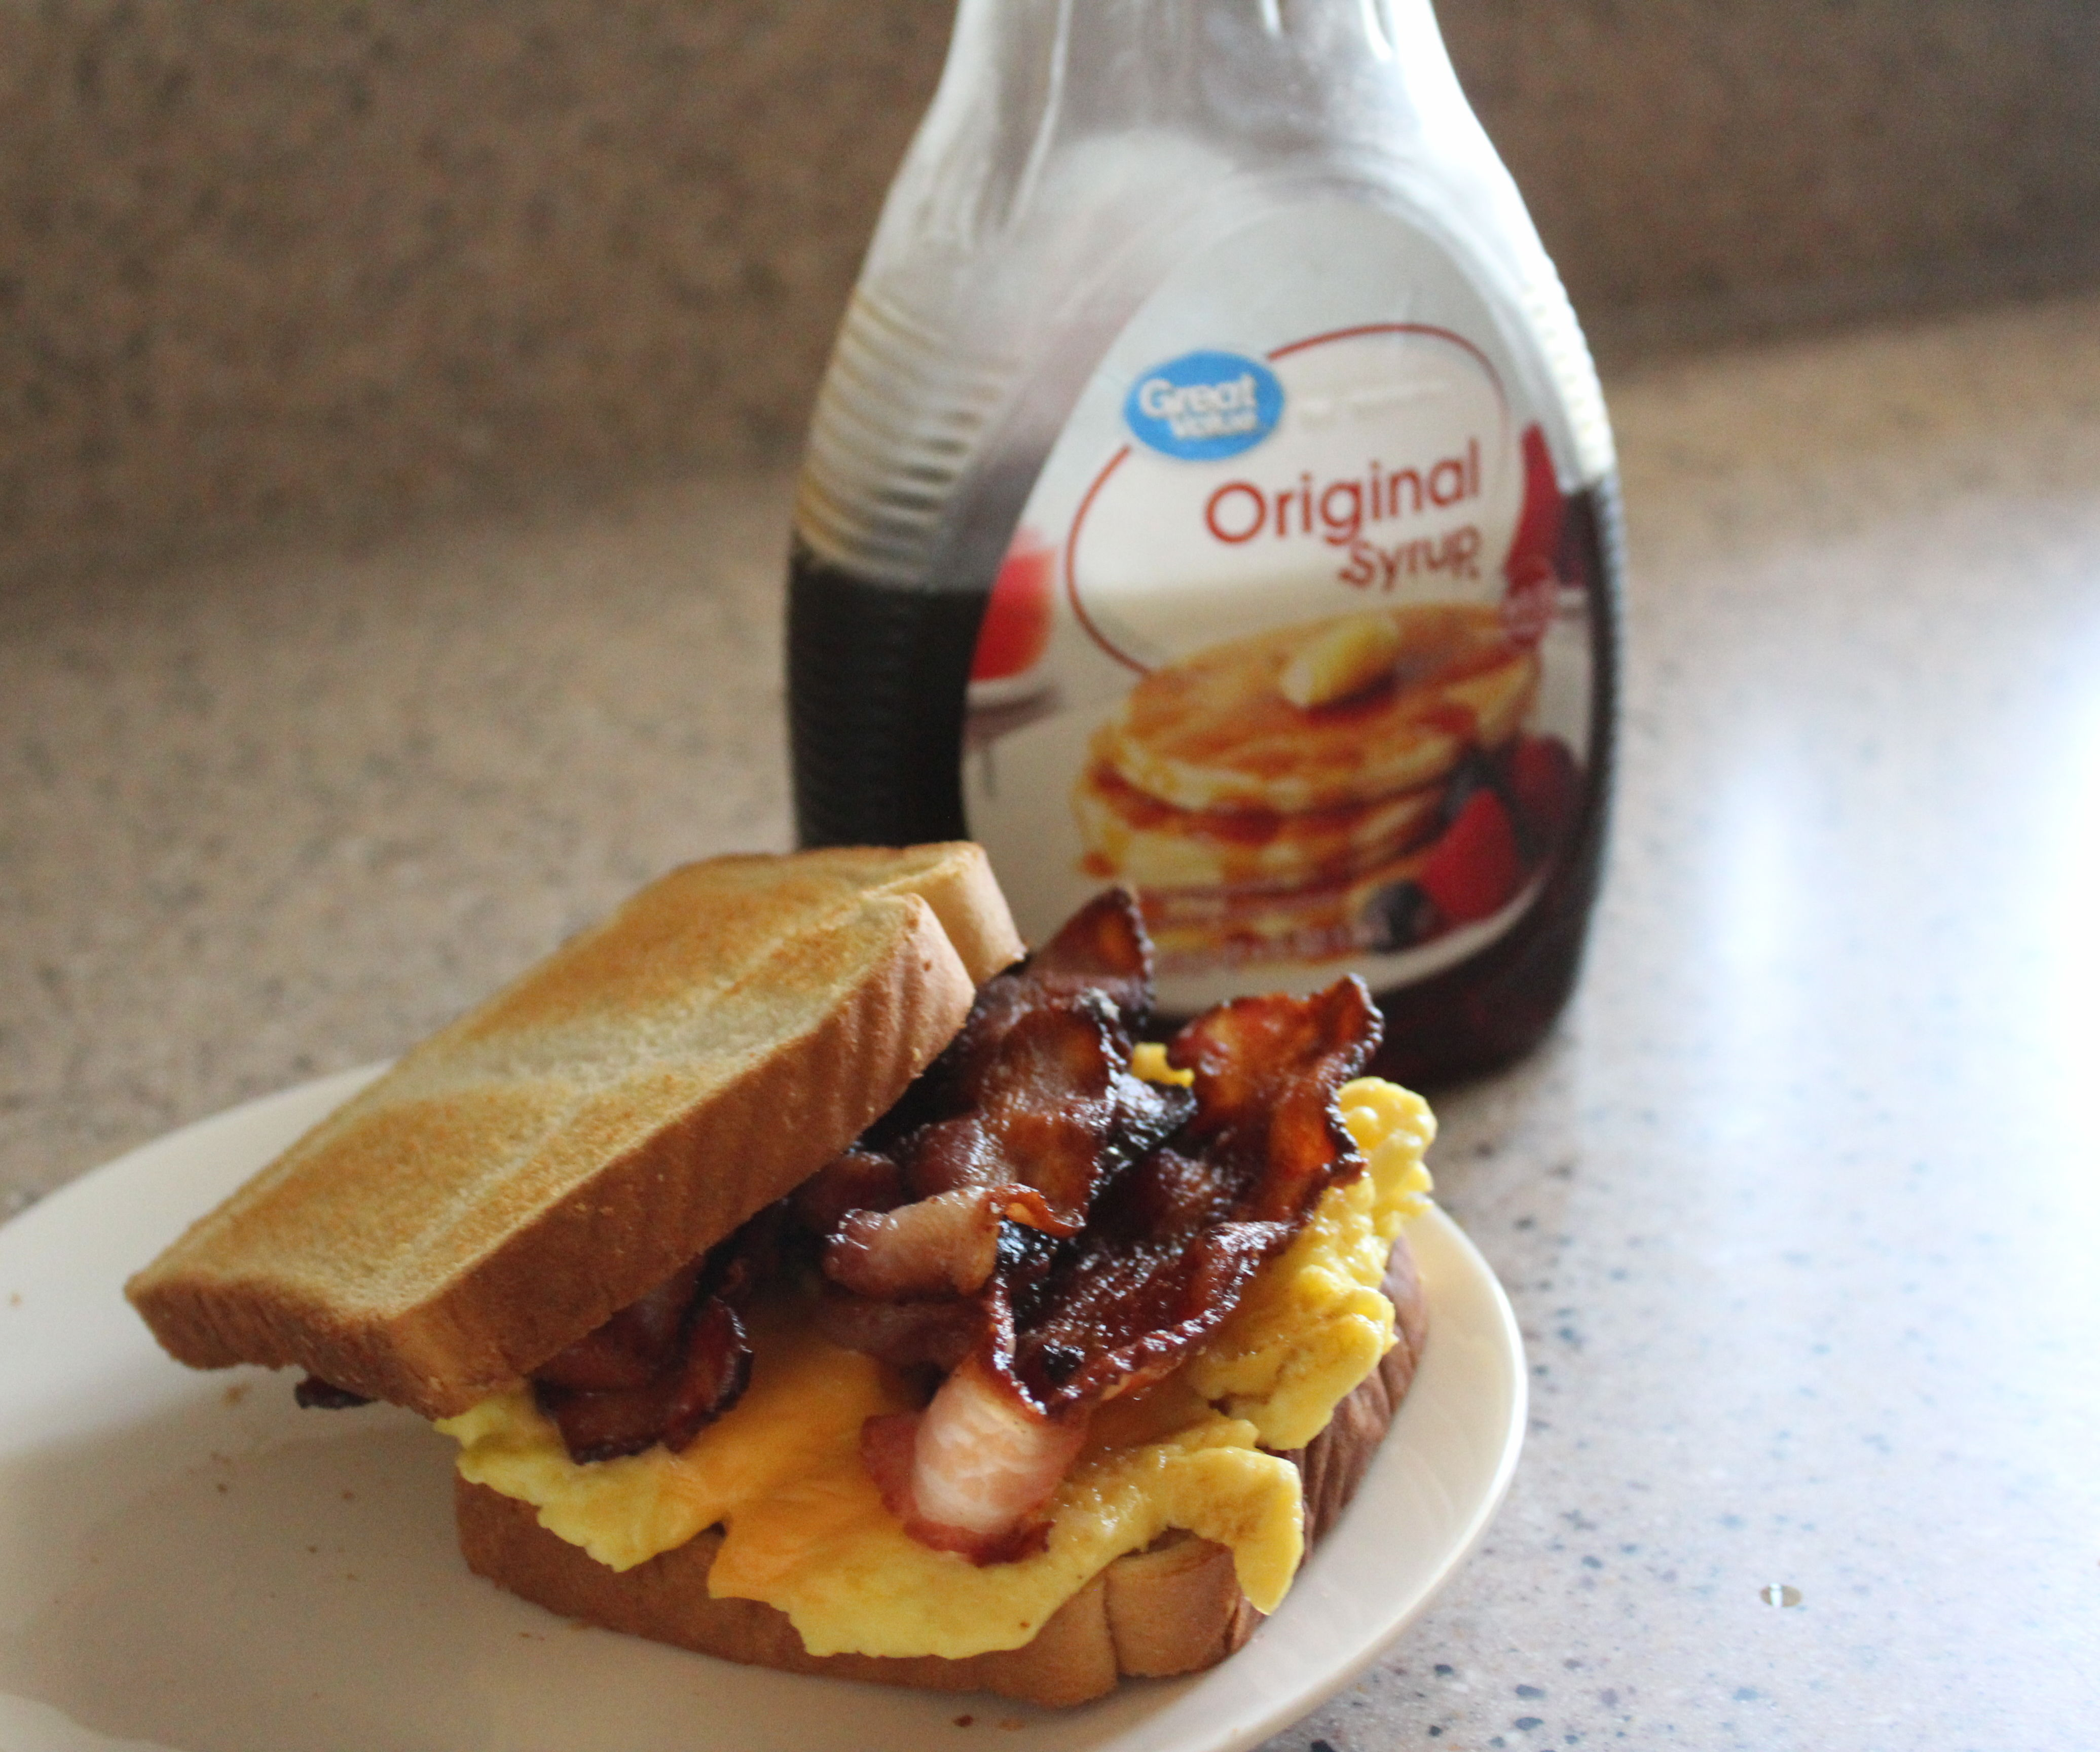 Bacon,Egg,Cheese Sandwich Drizzled With Syrup